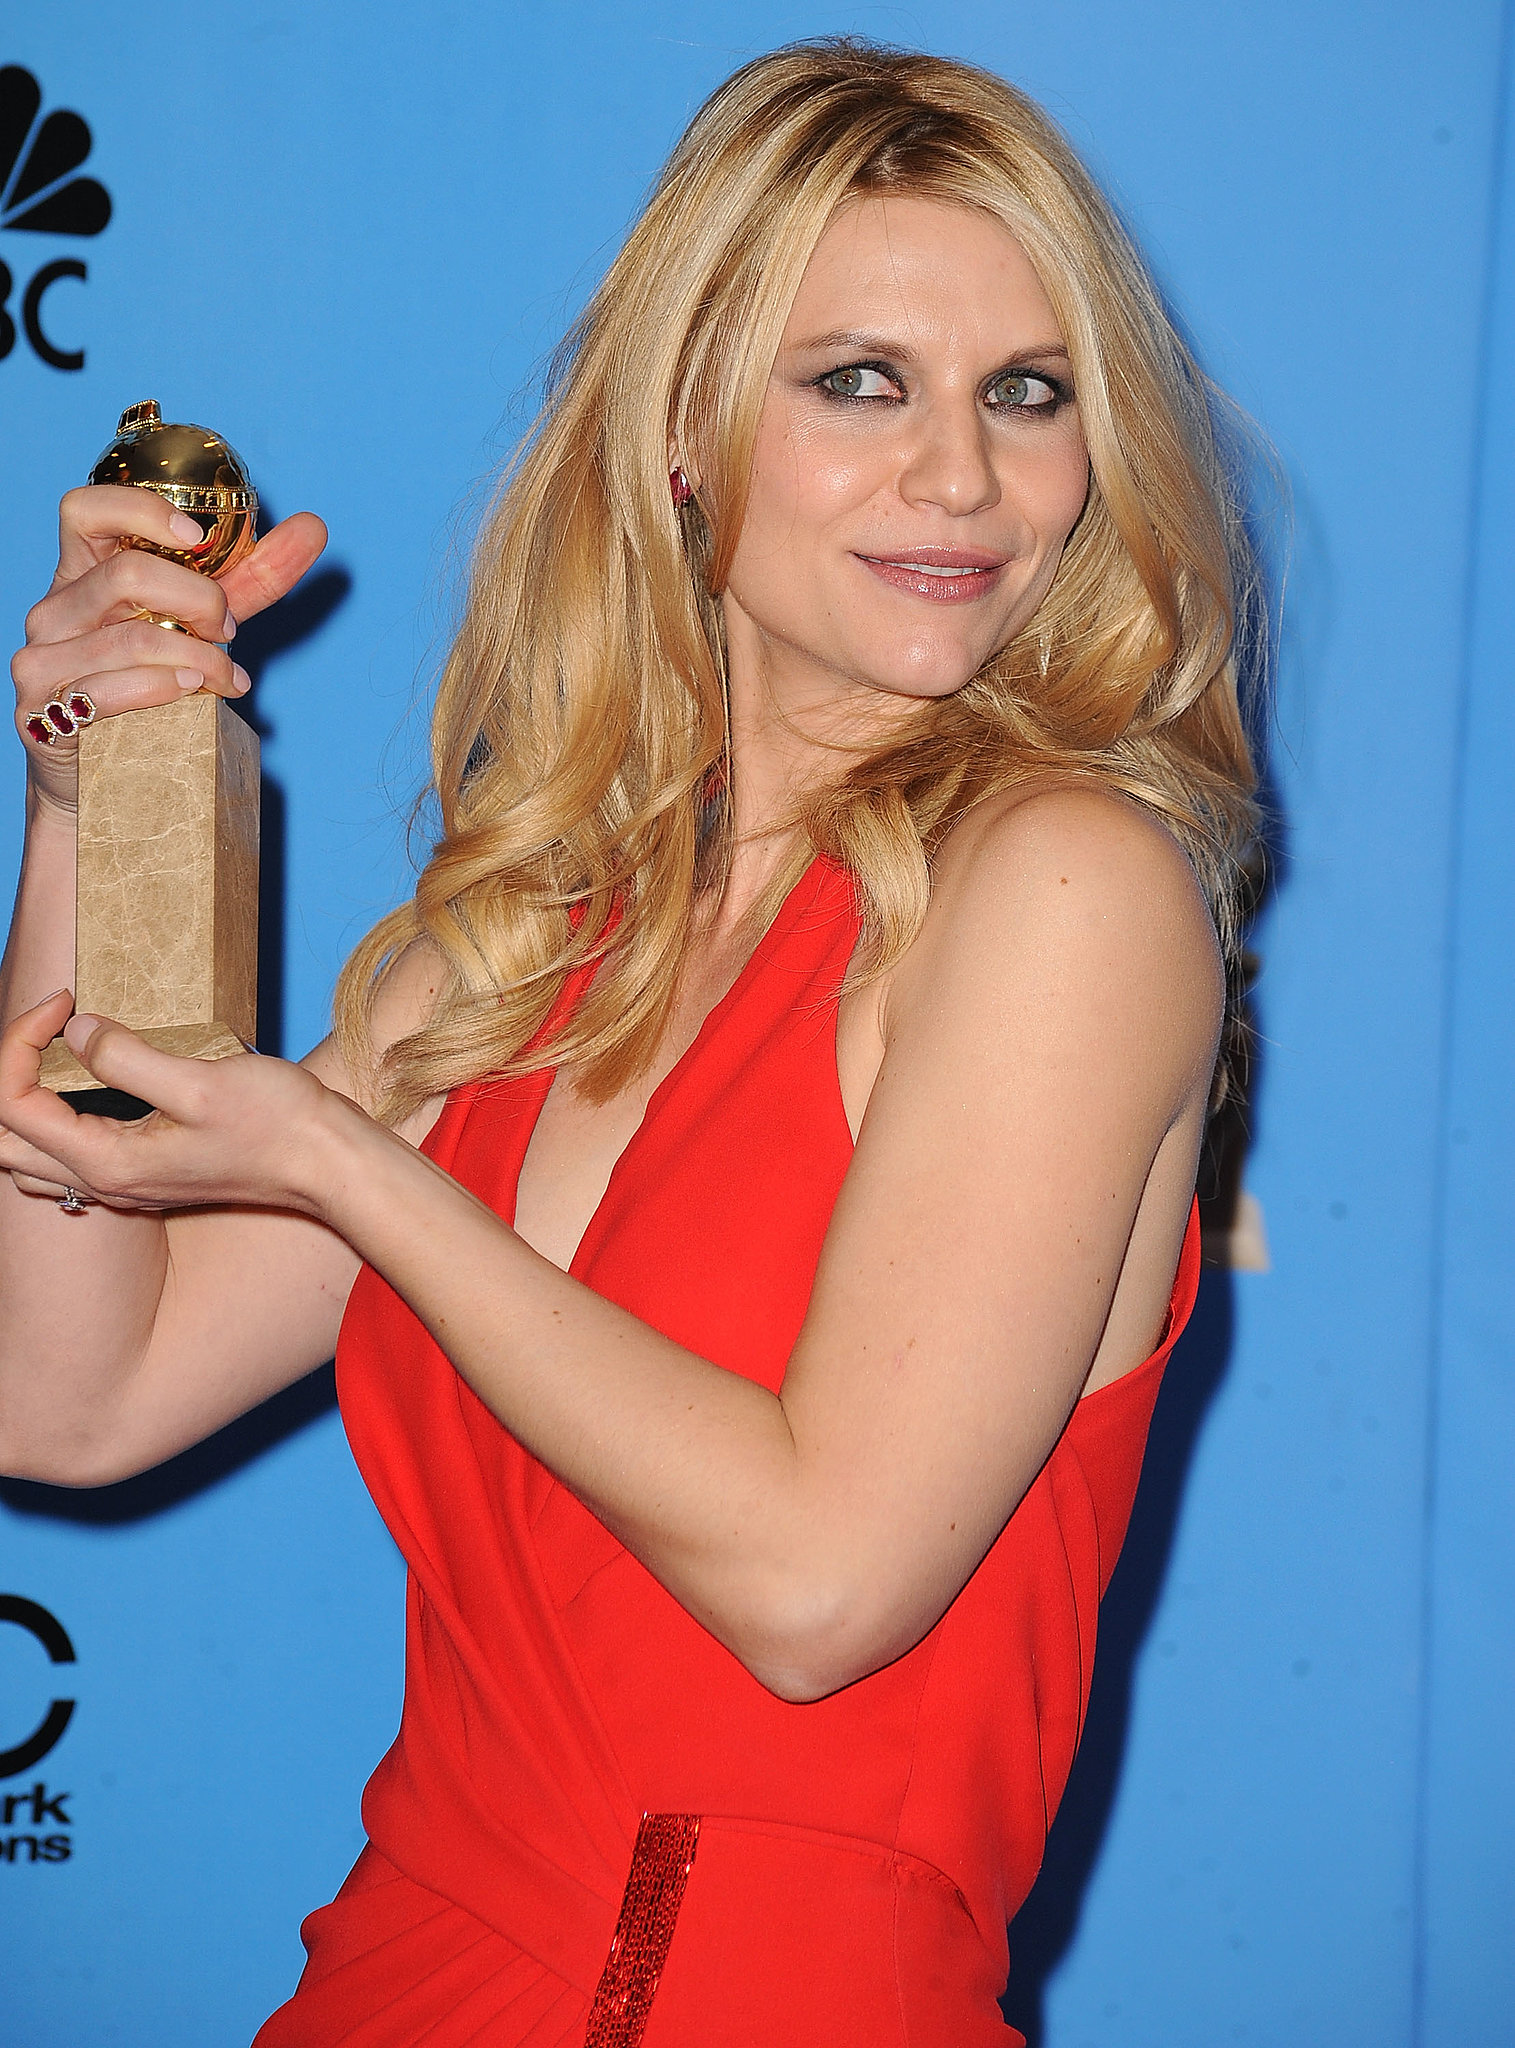 Claire Danes won the Golden Globe for best actress on a TV show, drama.